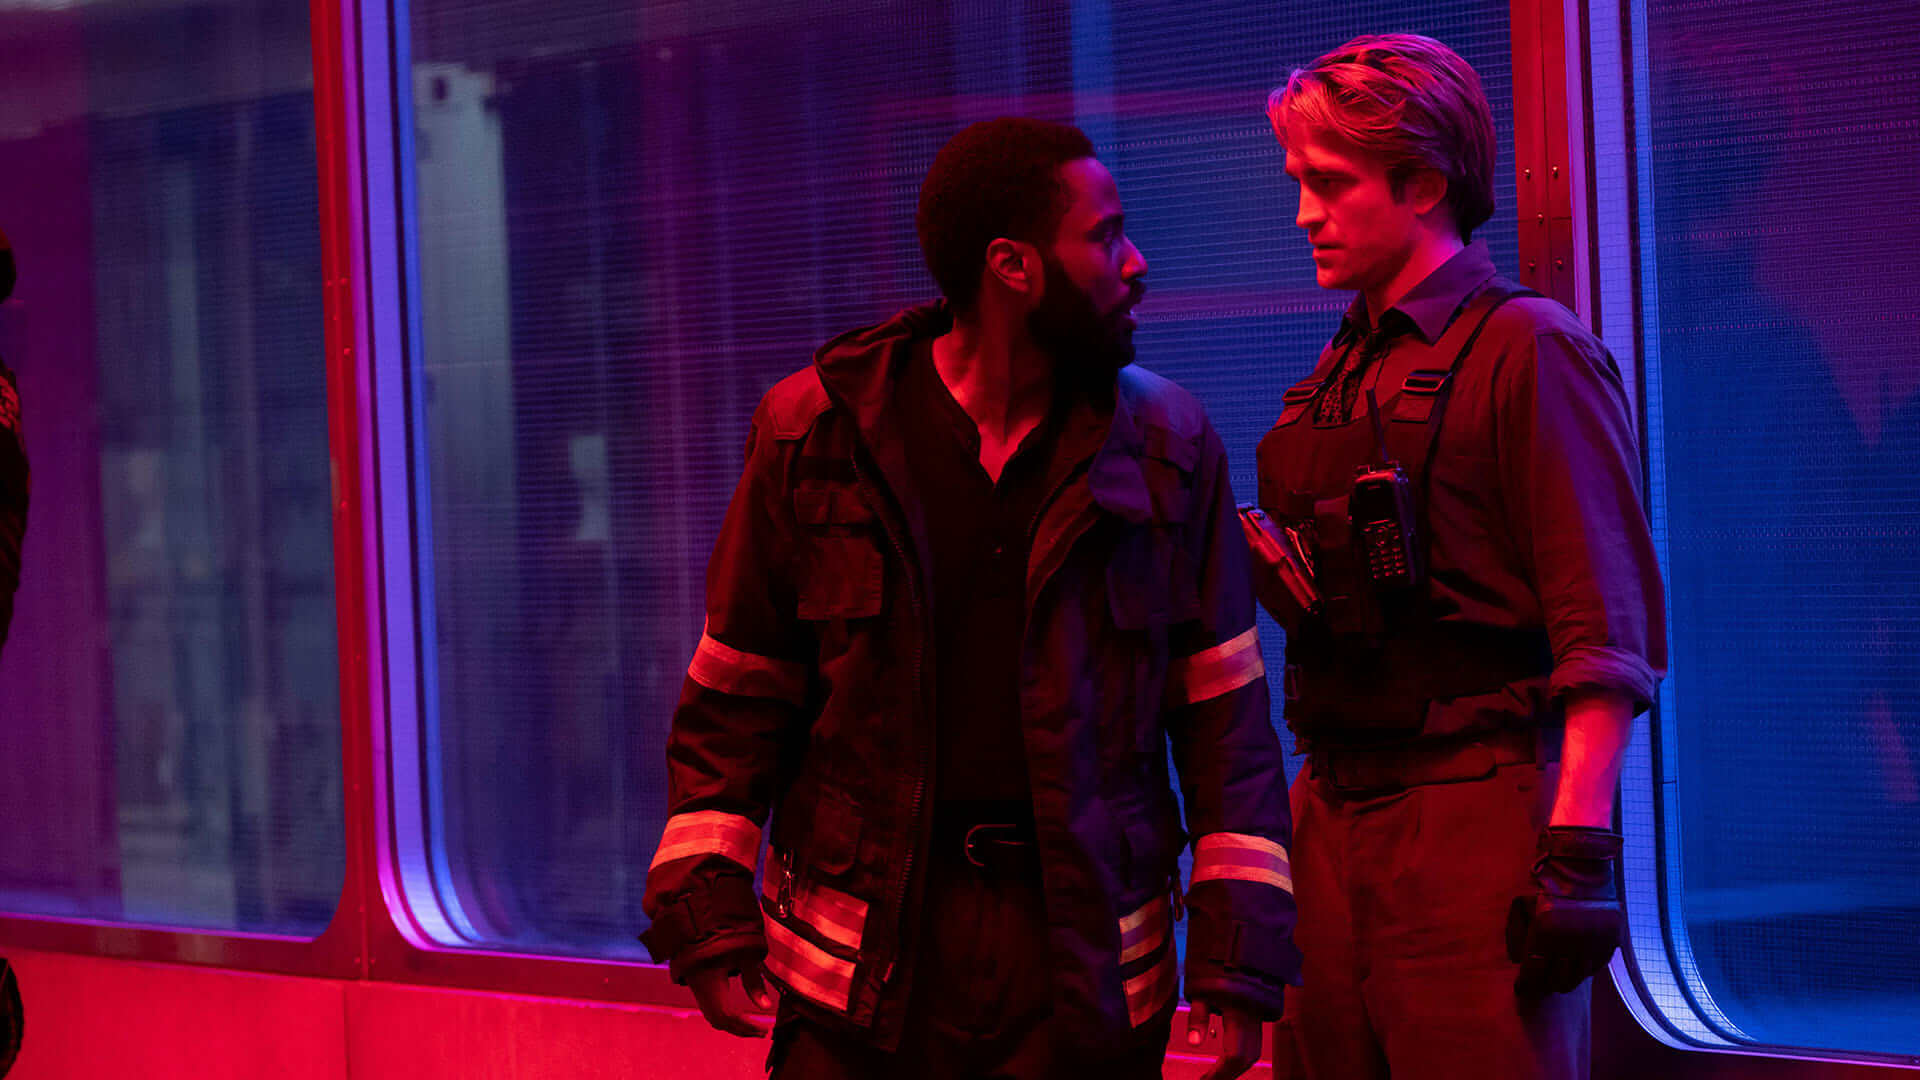 Tenet (2020) Still of John David Washington and Robert Pattinson